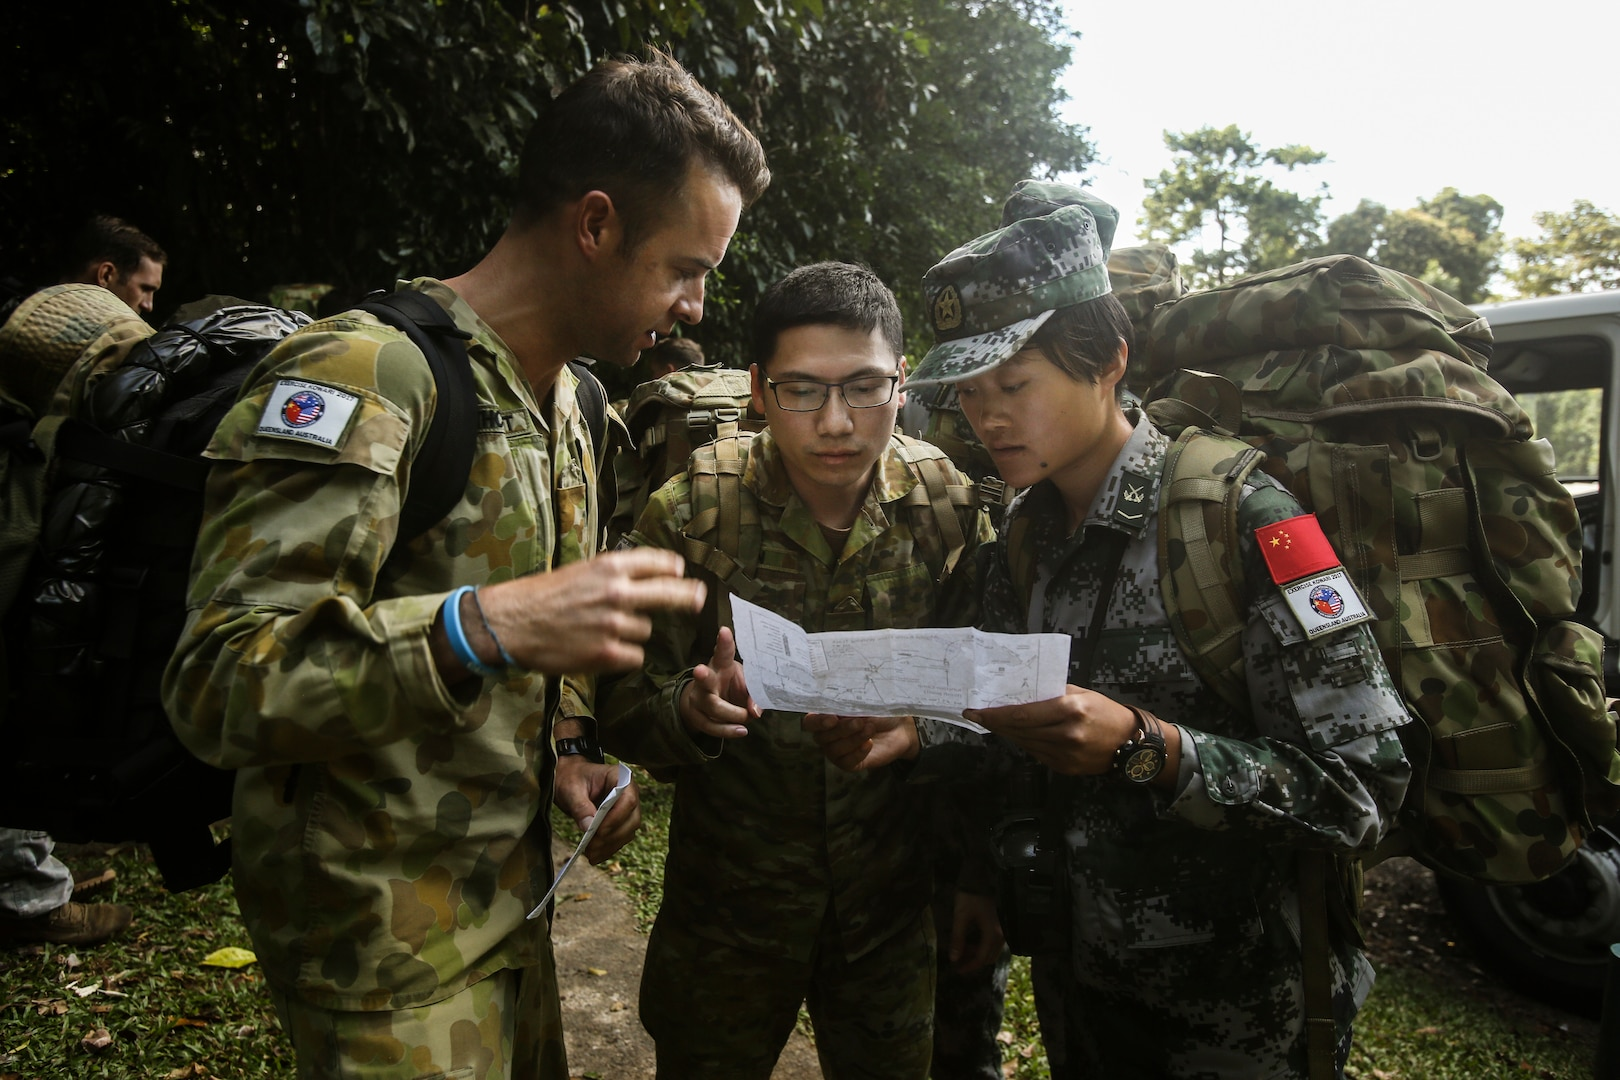 Chinese People's Liberation Army receives route map with instructions before leading her team of fellow Chinese soldiers, U.S. Marines, and Australian soldiers to summit of Queensland's highest peak during Exercise Kowari 2017